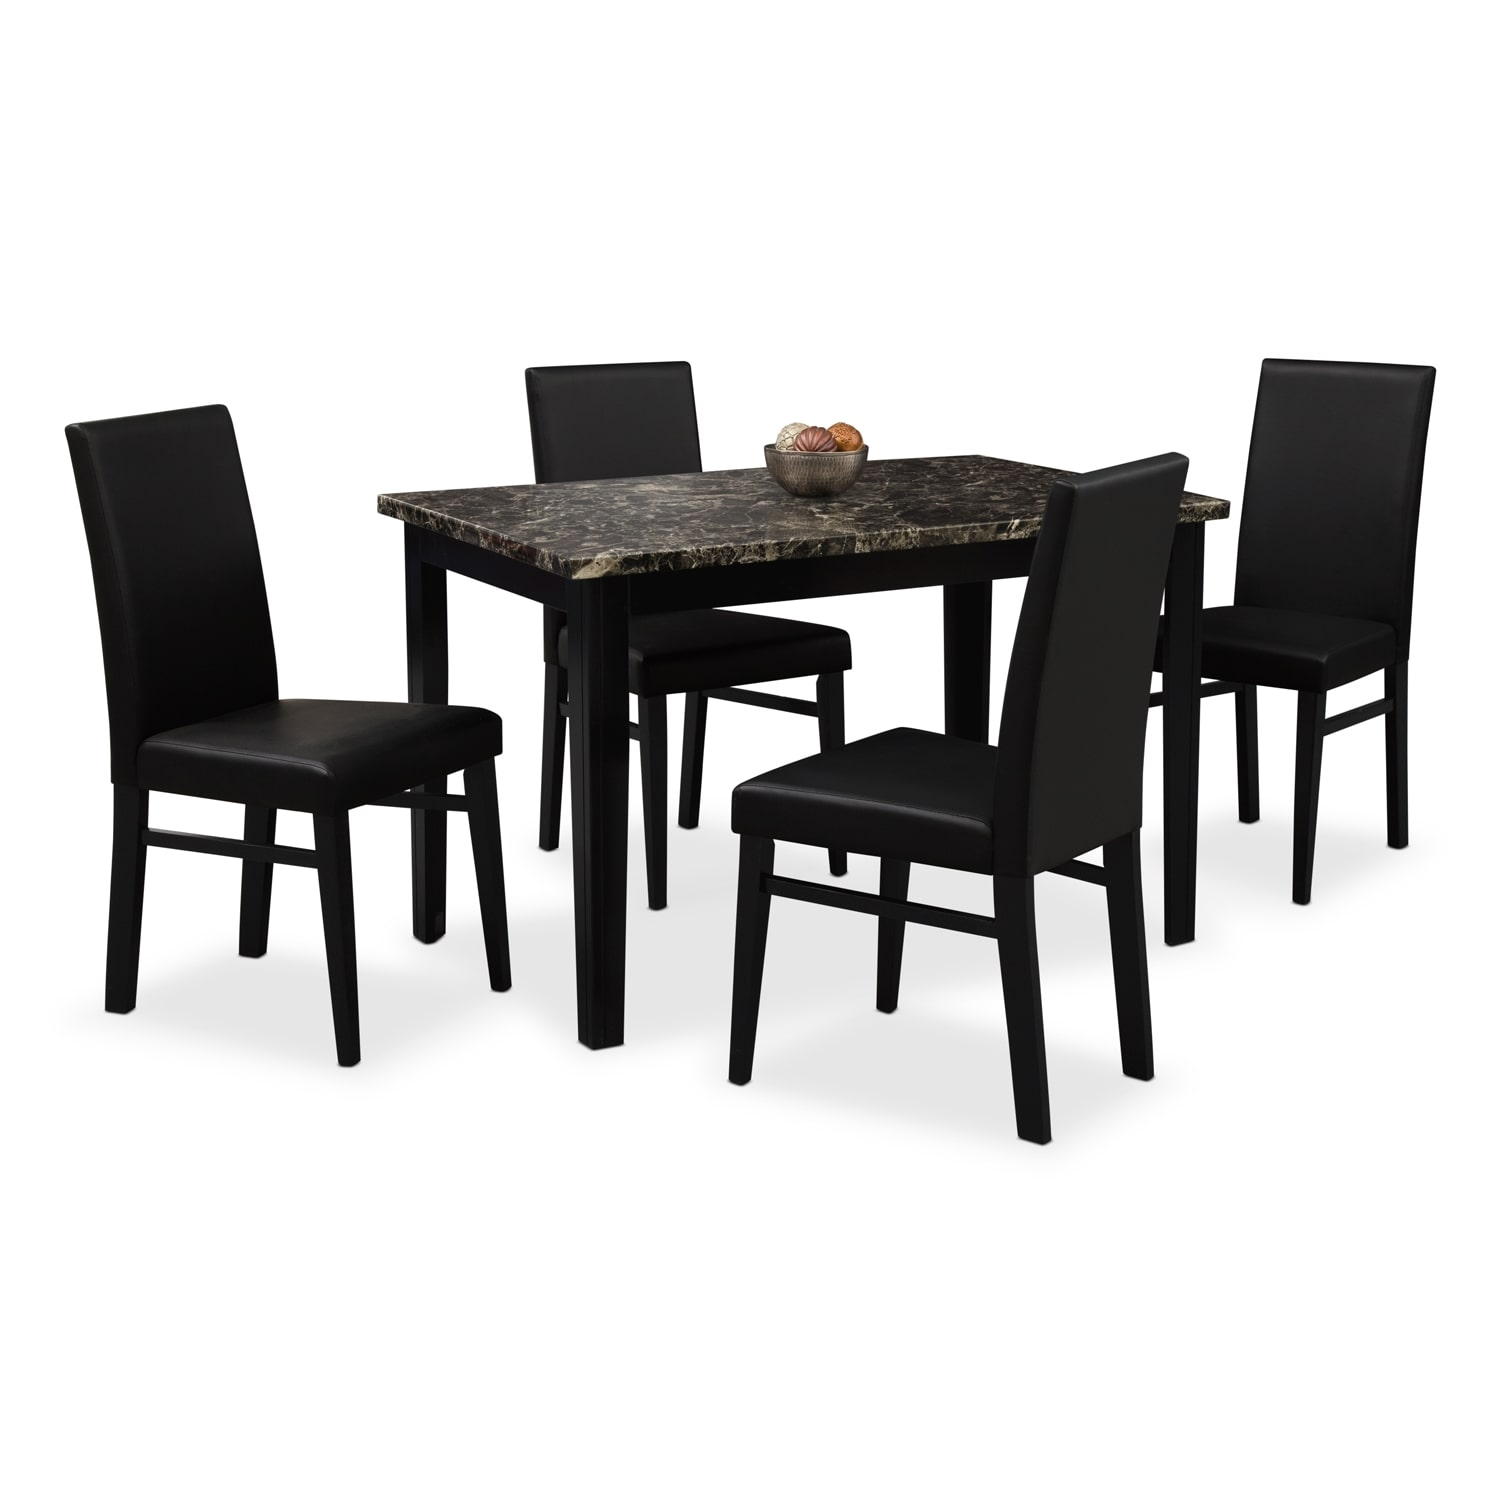 Shadow Table And 4 Chairs Black American Signature Furniture